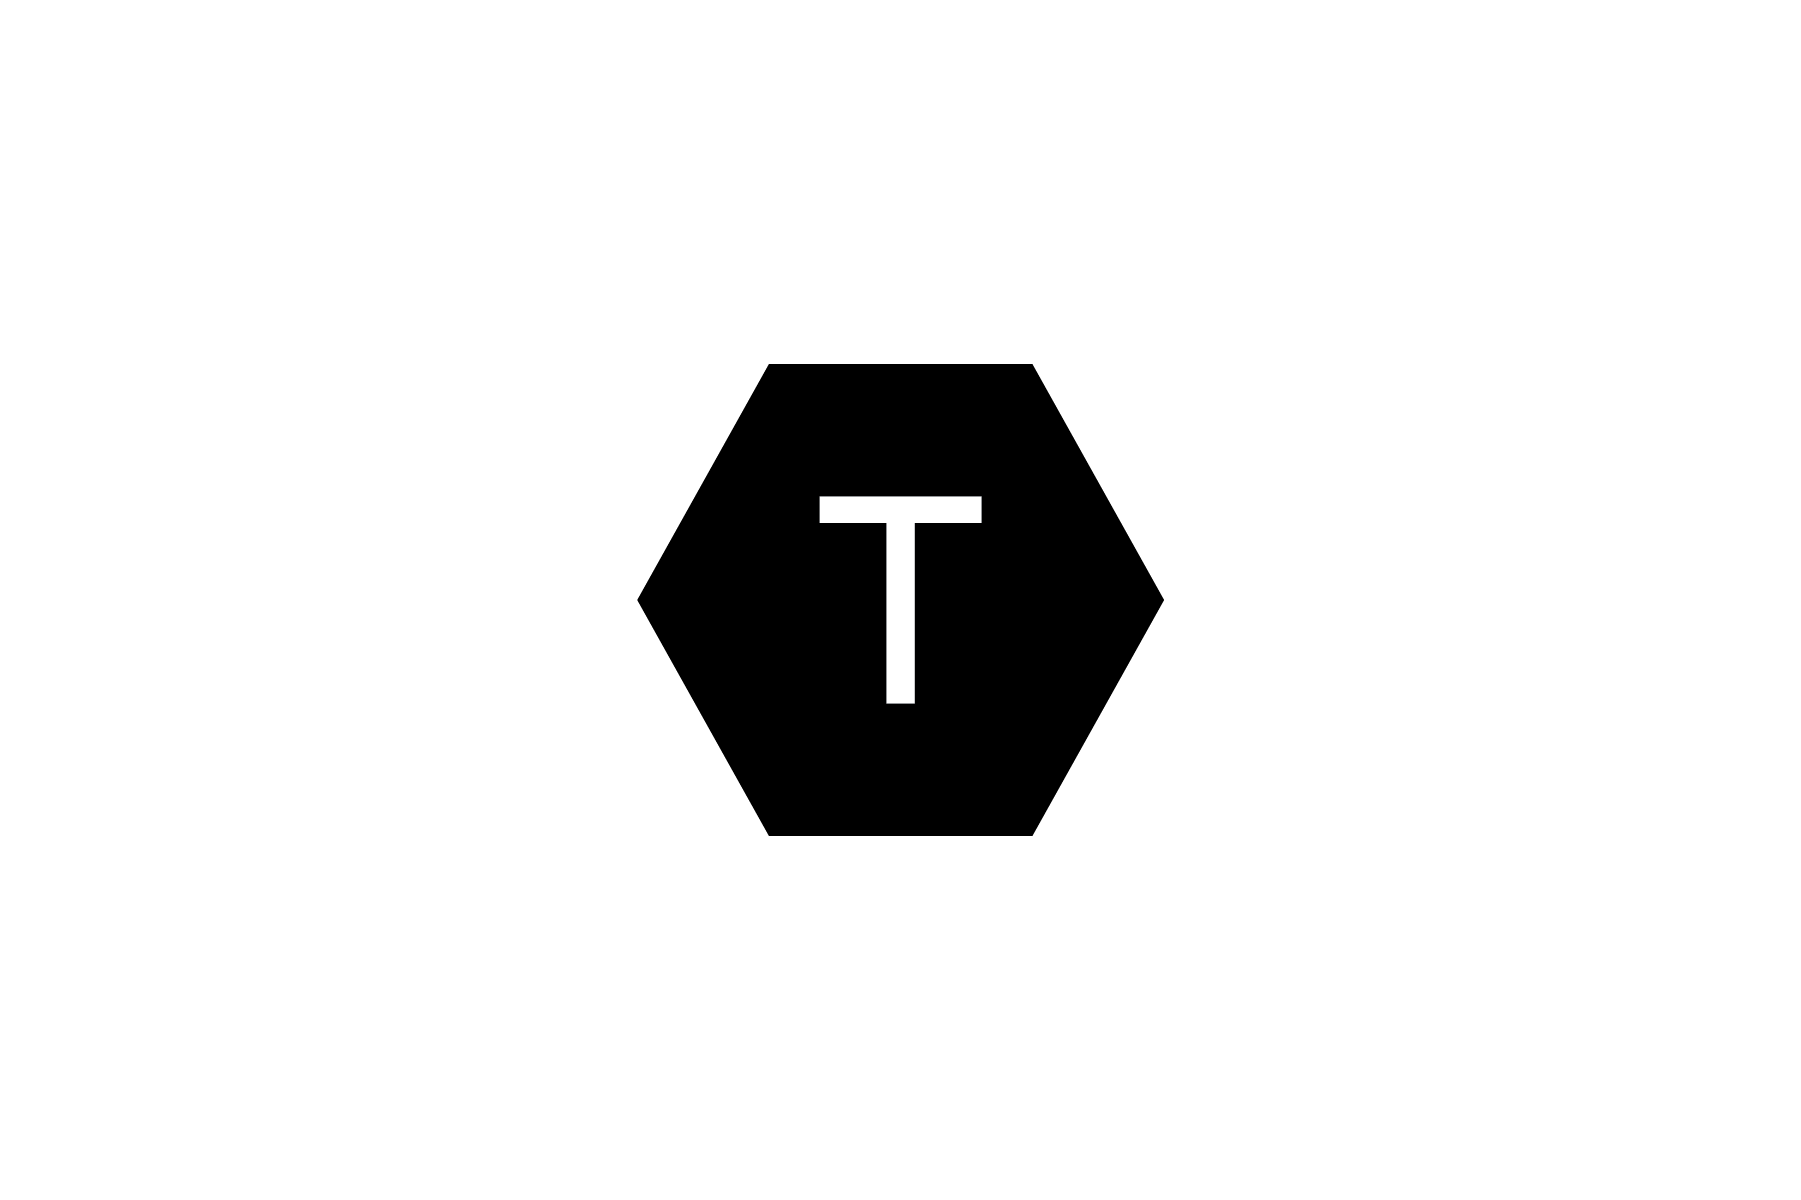 logo_iterations-03.png